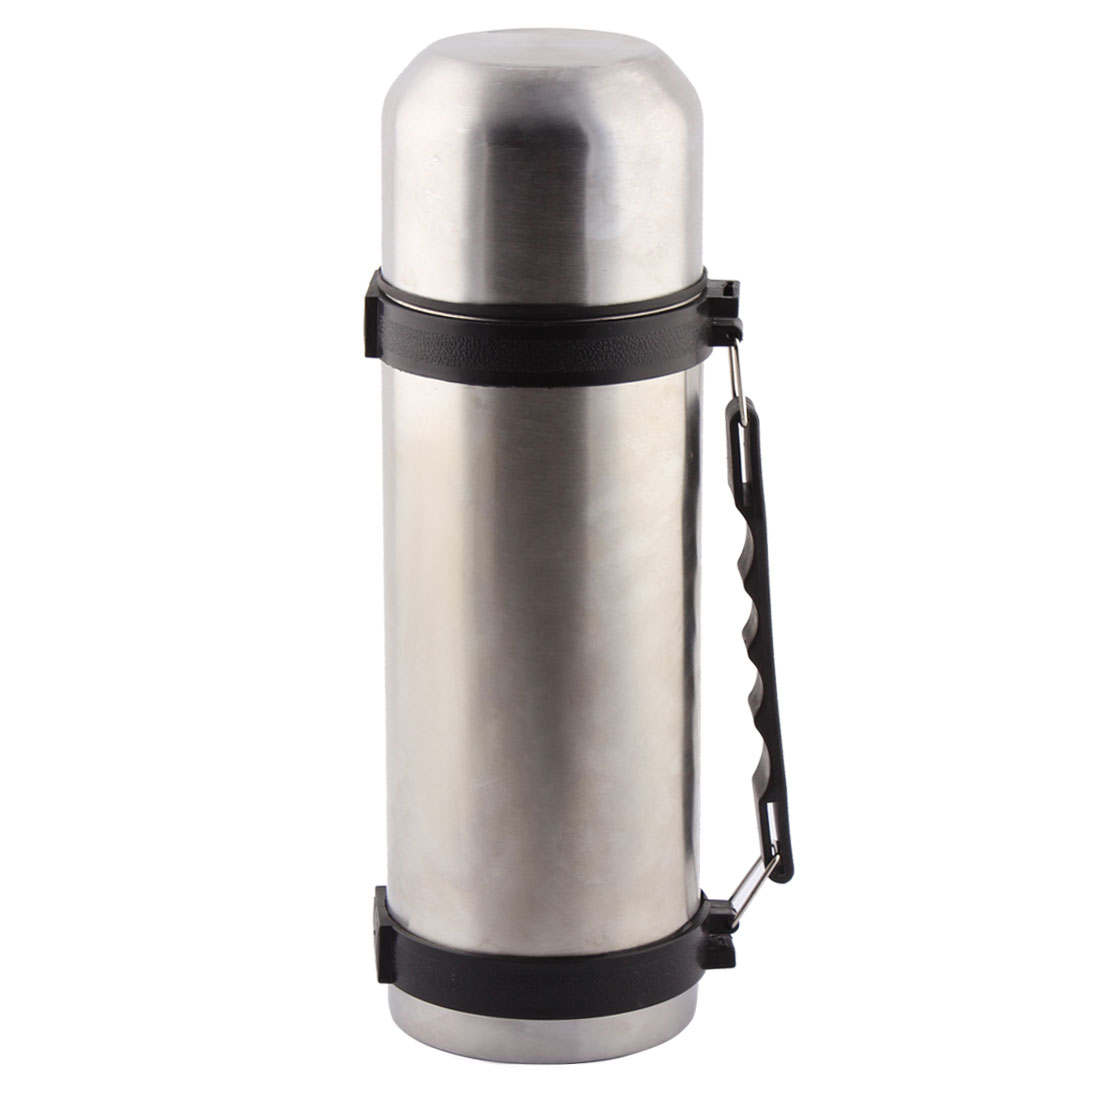 1200ml Capacity Plastic Handle Stainless Steel Thermal Vacuum Travel Water Mug Cup